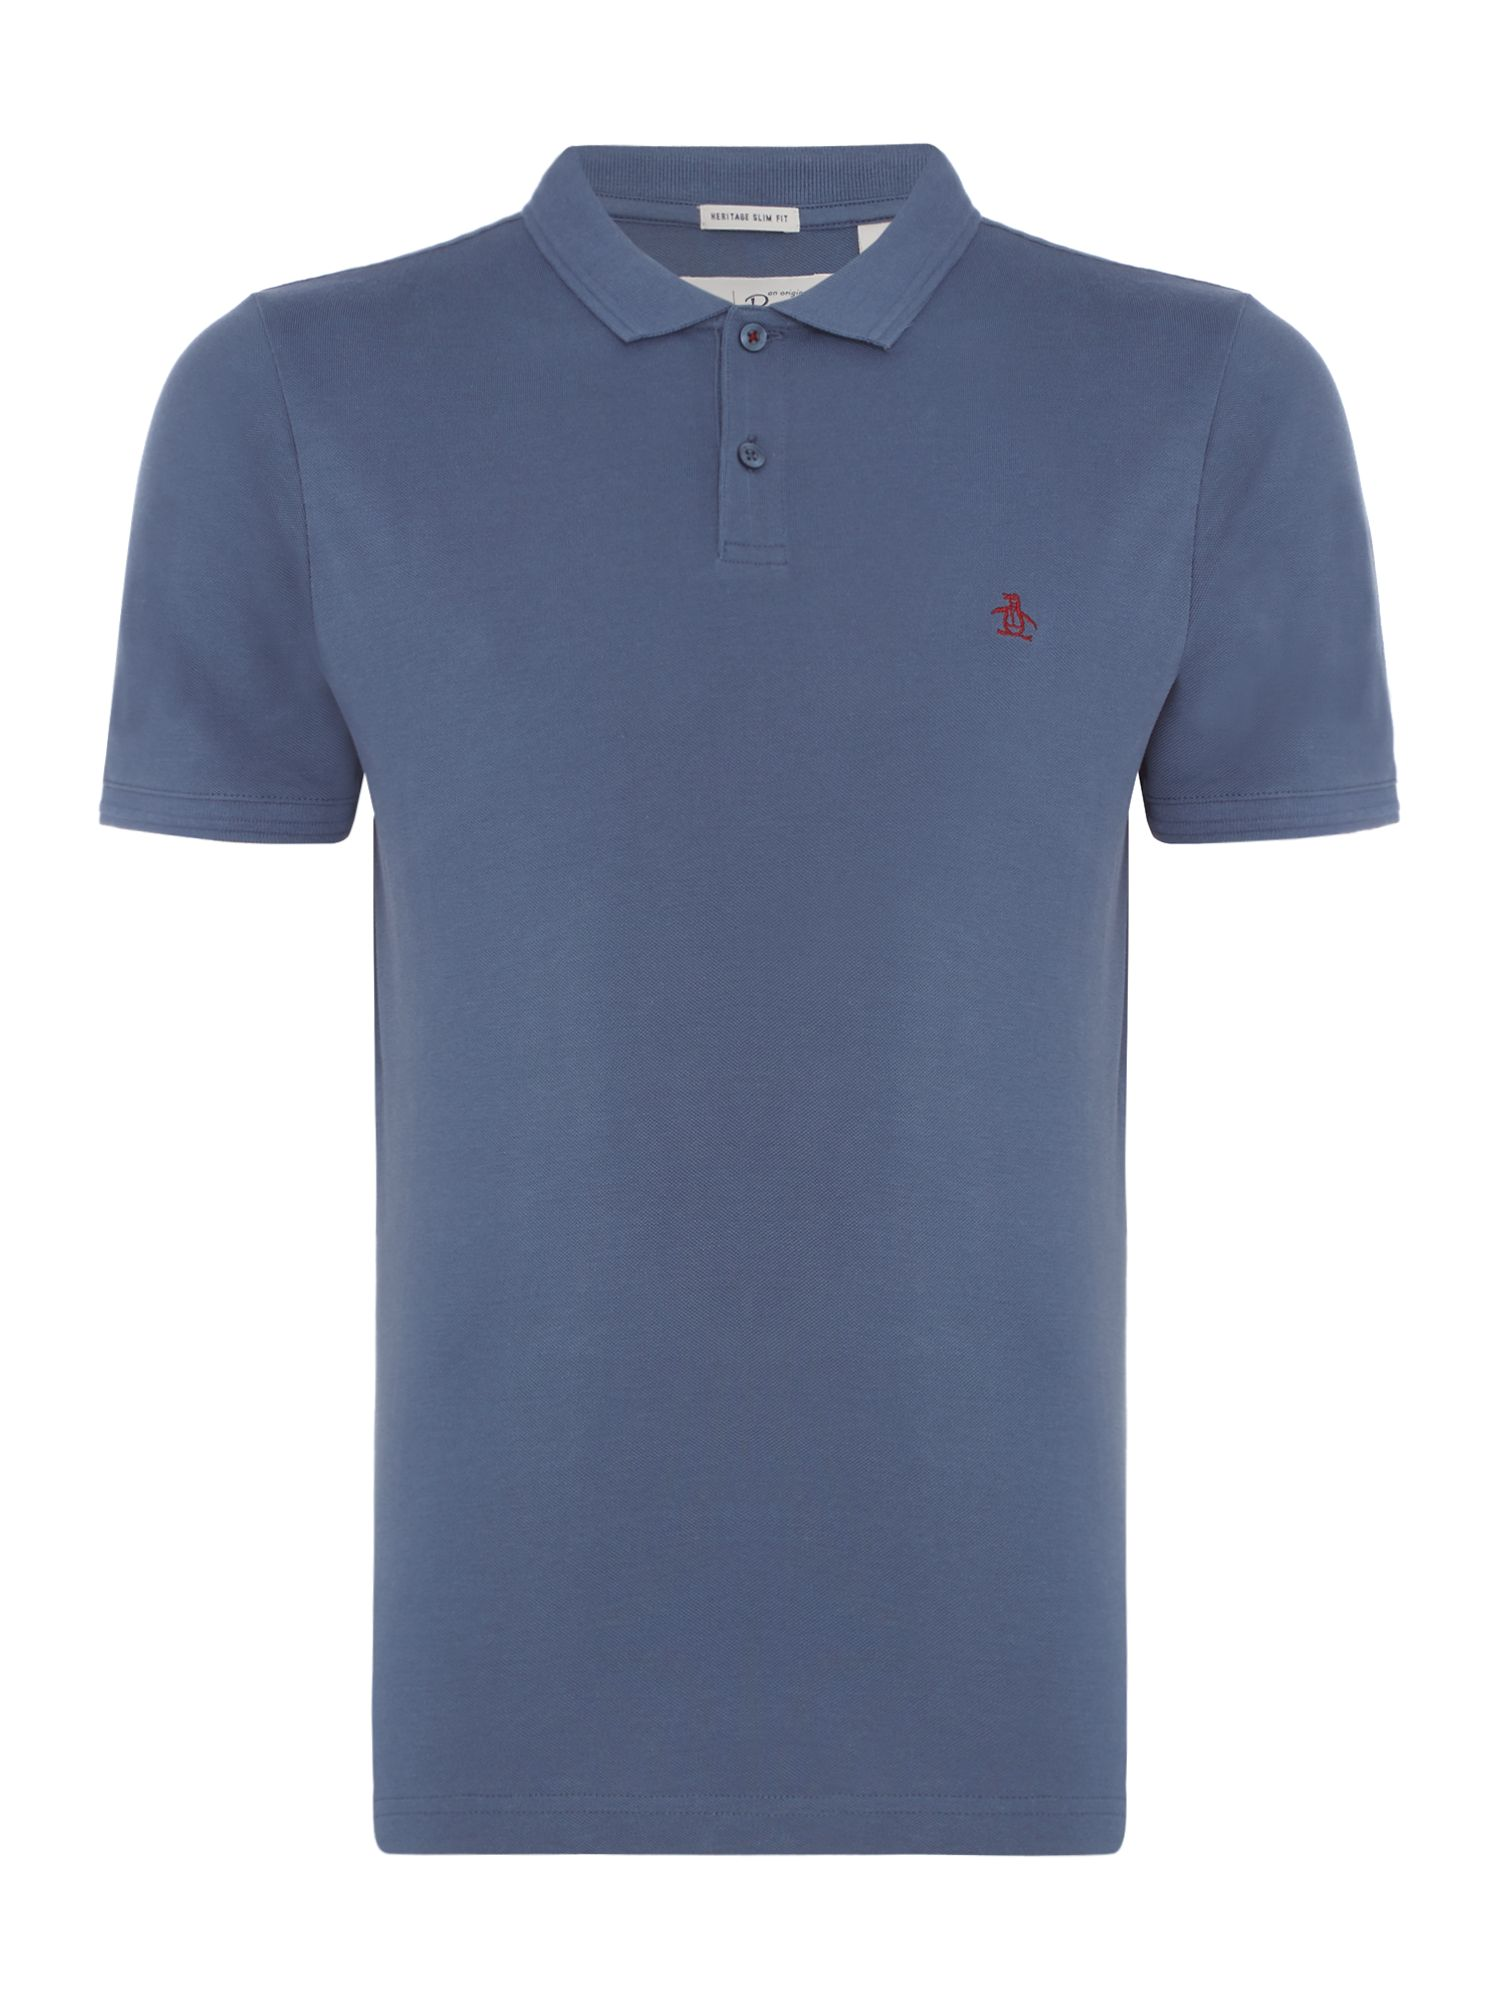 Men's Original Penguin Raised Rib Polo Shirt, Indigo